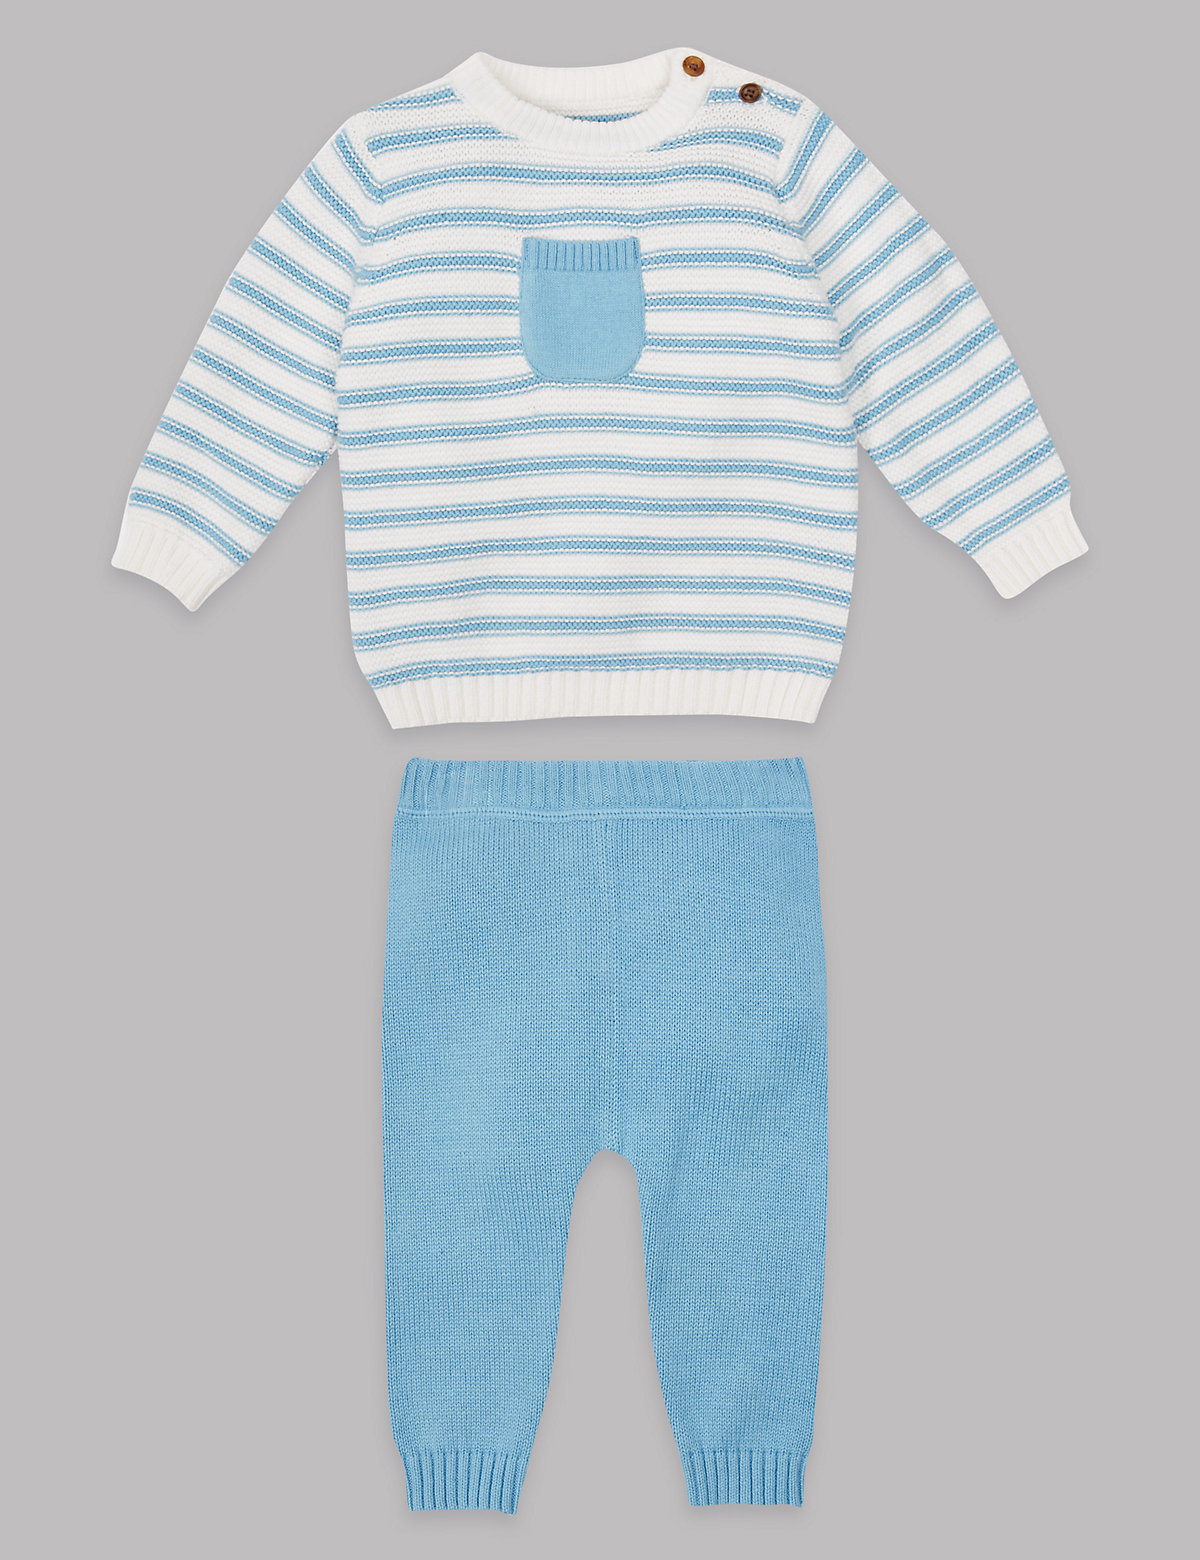 Autograph 2 Piece Pure Cotton Knitted Top & Bottom Outfit